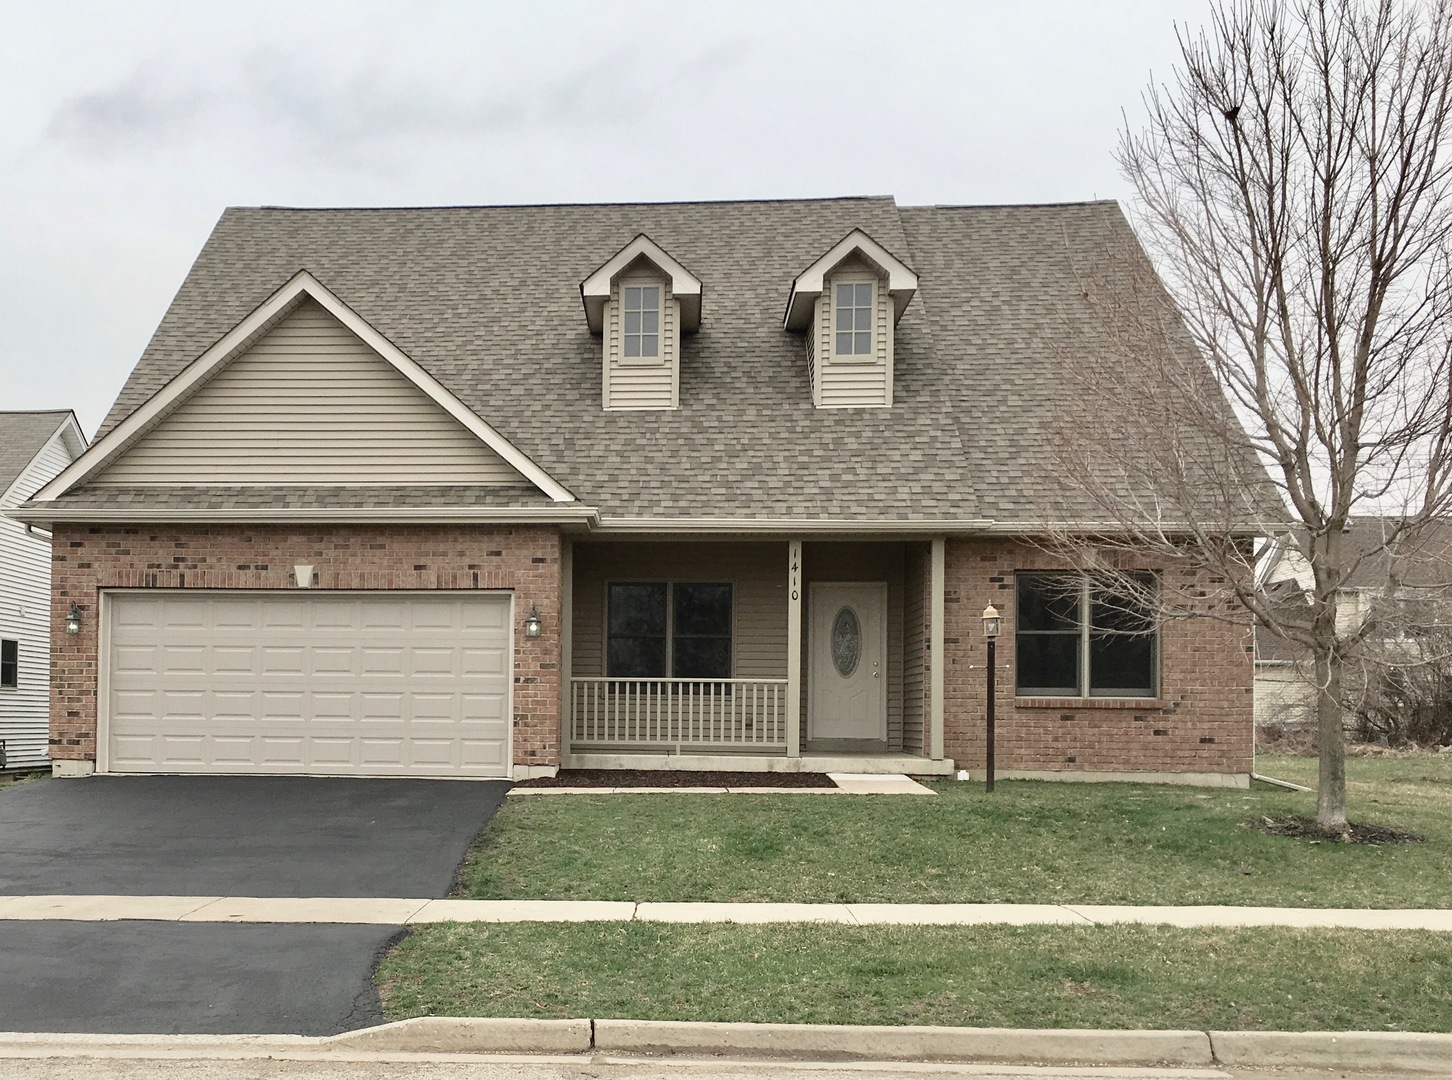 Photo for 1410 Sandpiper Lane, Woodstock, IL 60098 (MLS # 10602802)